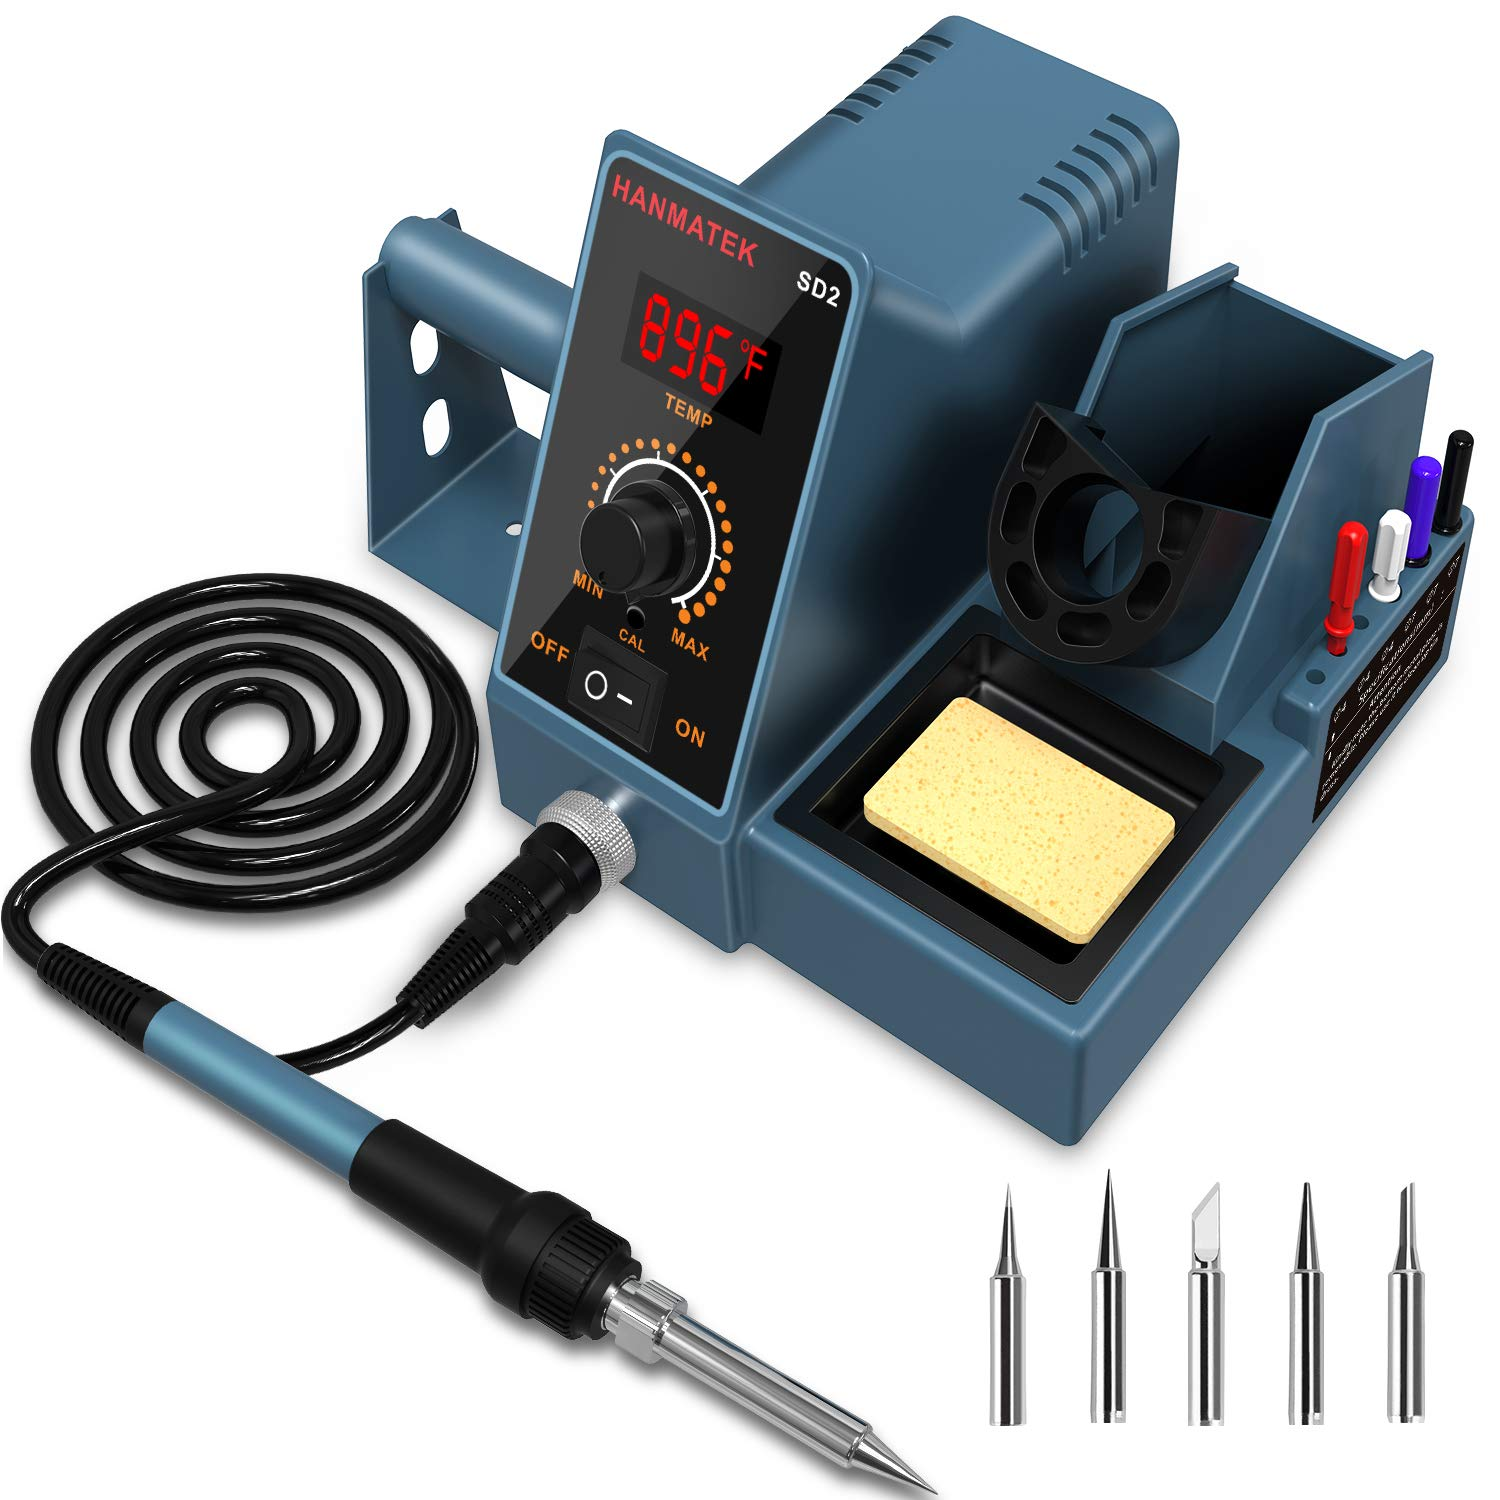 Soldering Station, HANMATEK Digital Display Soldering Iron Station, 392℉-896℉ Temperature Adjustable Better Soldering Iron,5 Additional Soldering Iron Tips, Soldering Kit with Solder Bracket SD2